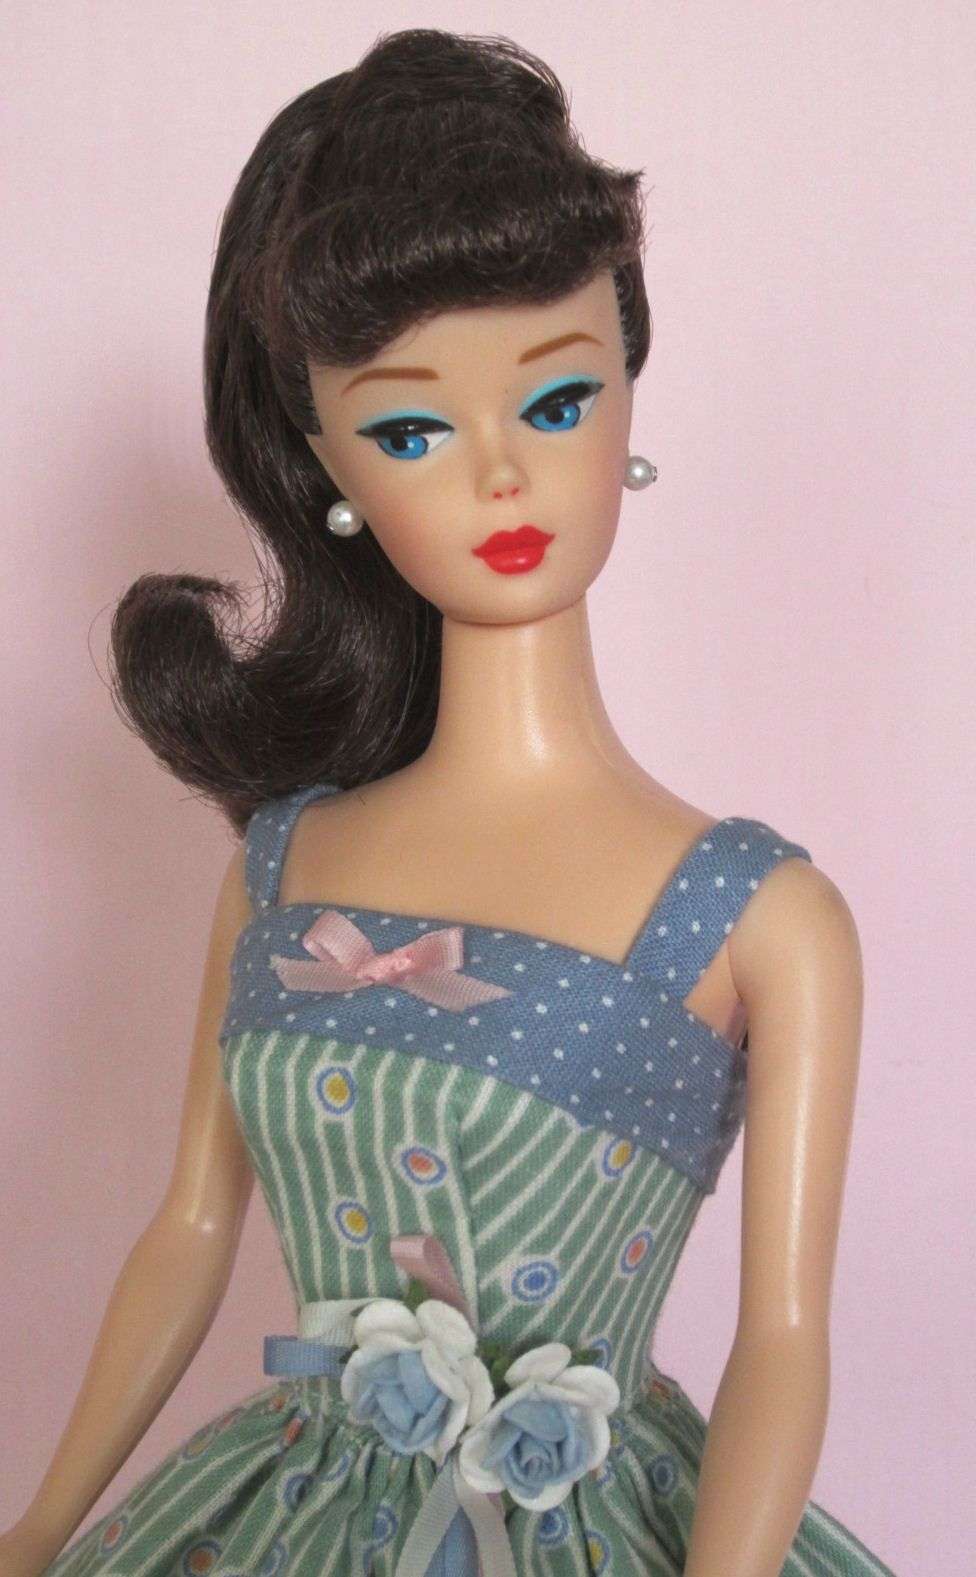 Suddenly Spring! on eBay auction right now! Vintage Barbie Doll Dress Reproduction Barbie Clothes on eBay http://www.ebay.com/usr/fanfare1901?_trksid=p2047675.l2559